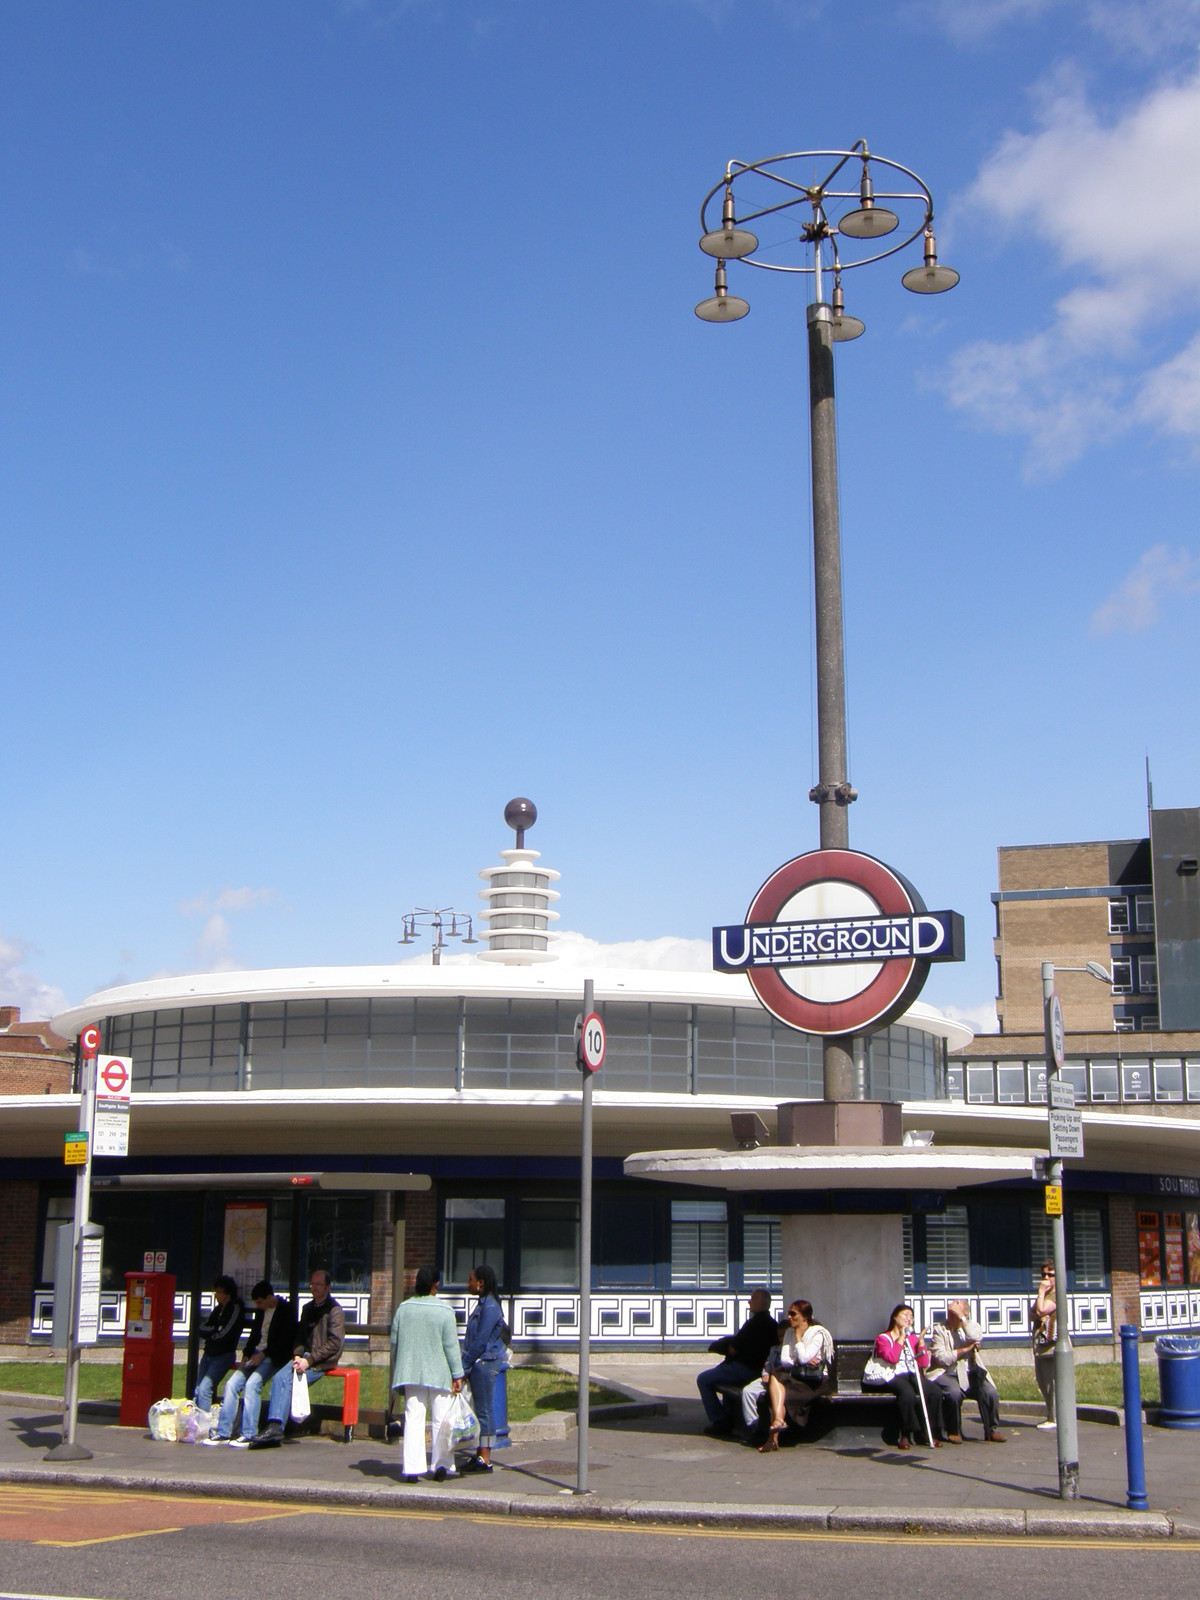 One of the futuristic shelters at Southgate station